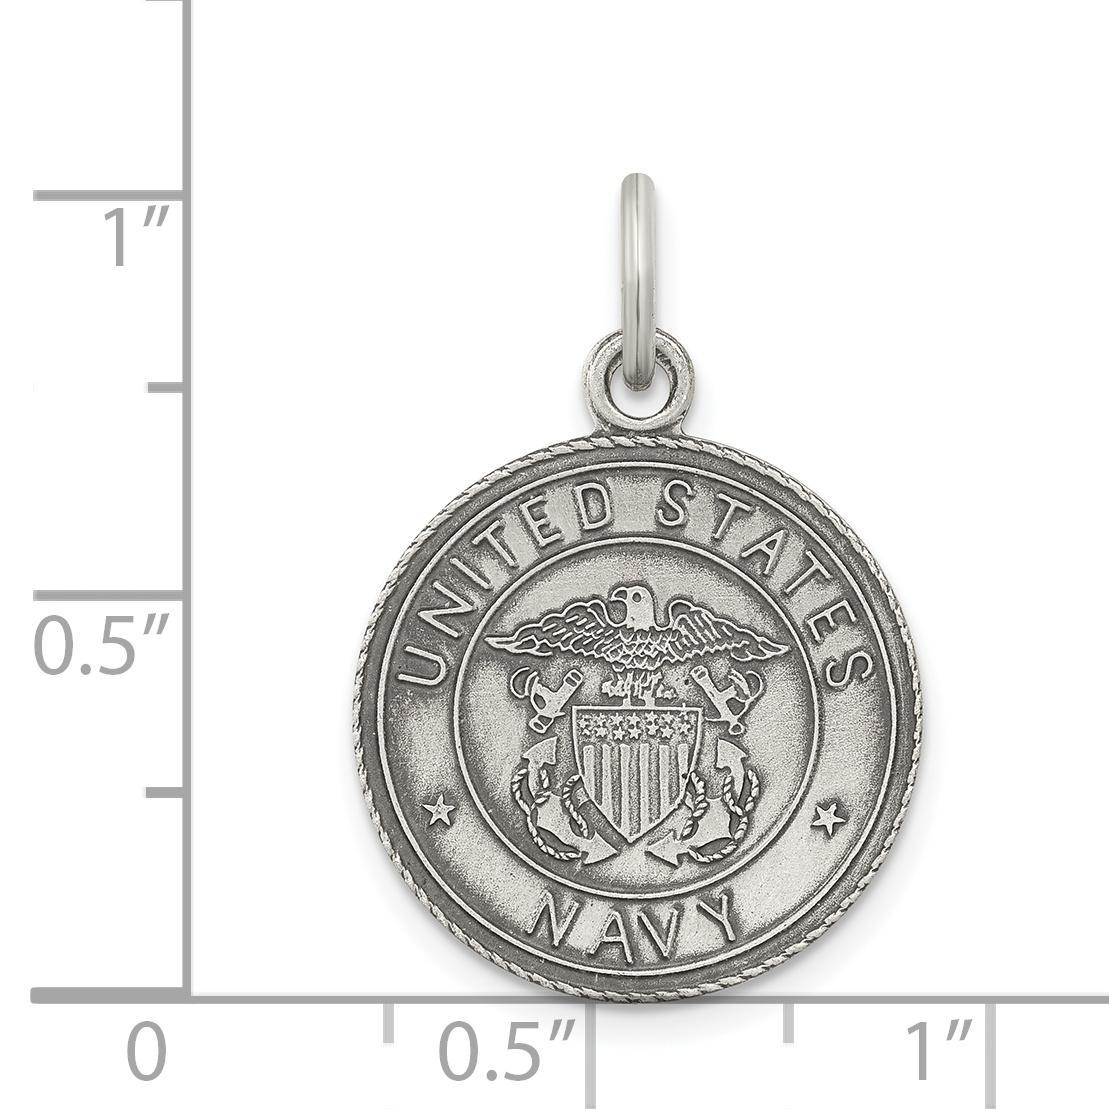 925 Sterling Silver Us Navy Medal Pendant Charm Necklace Military Religious Patron Saint St Christopher Fine Jewelry Gifts For Women For Her - image 1 de 2